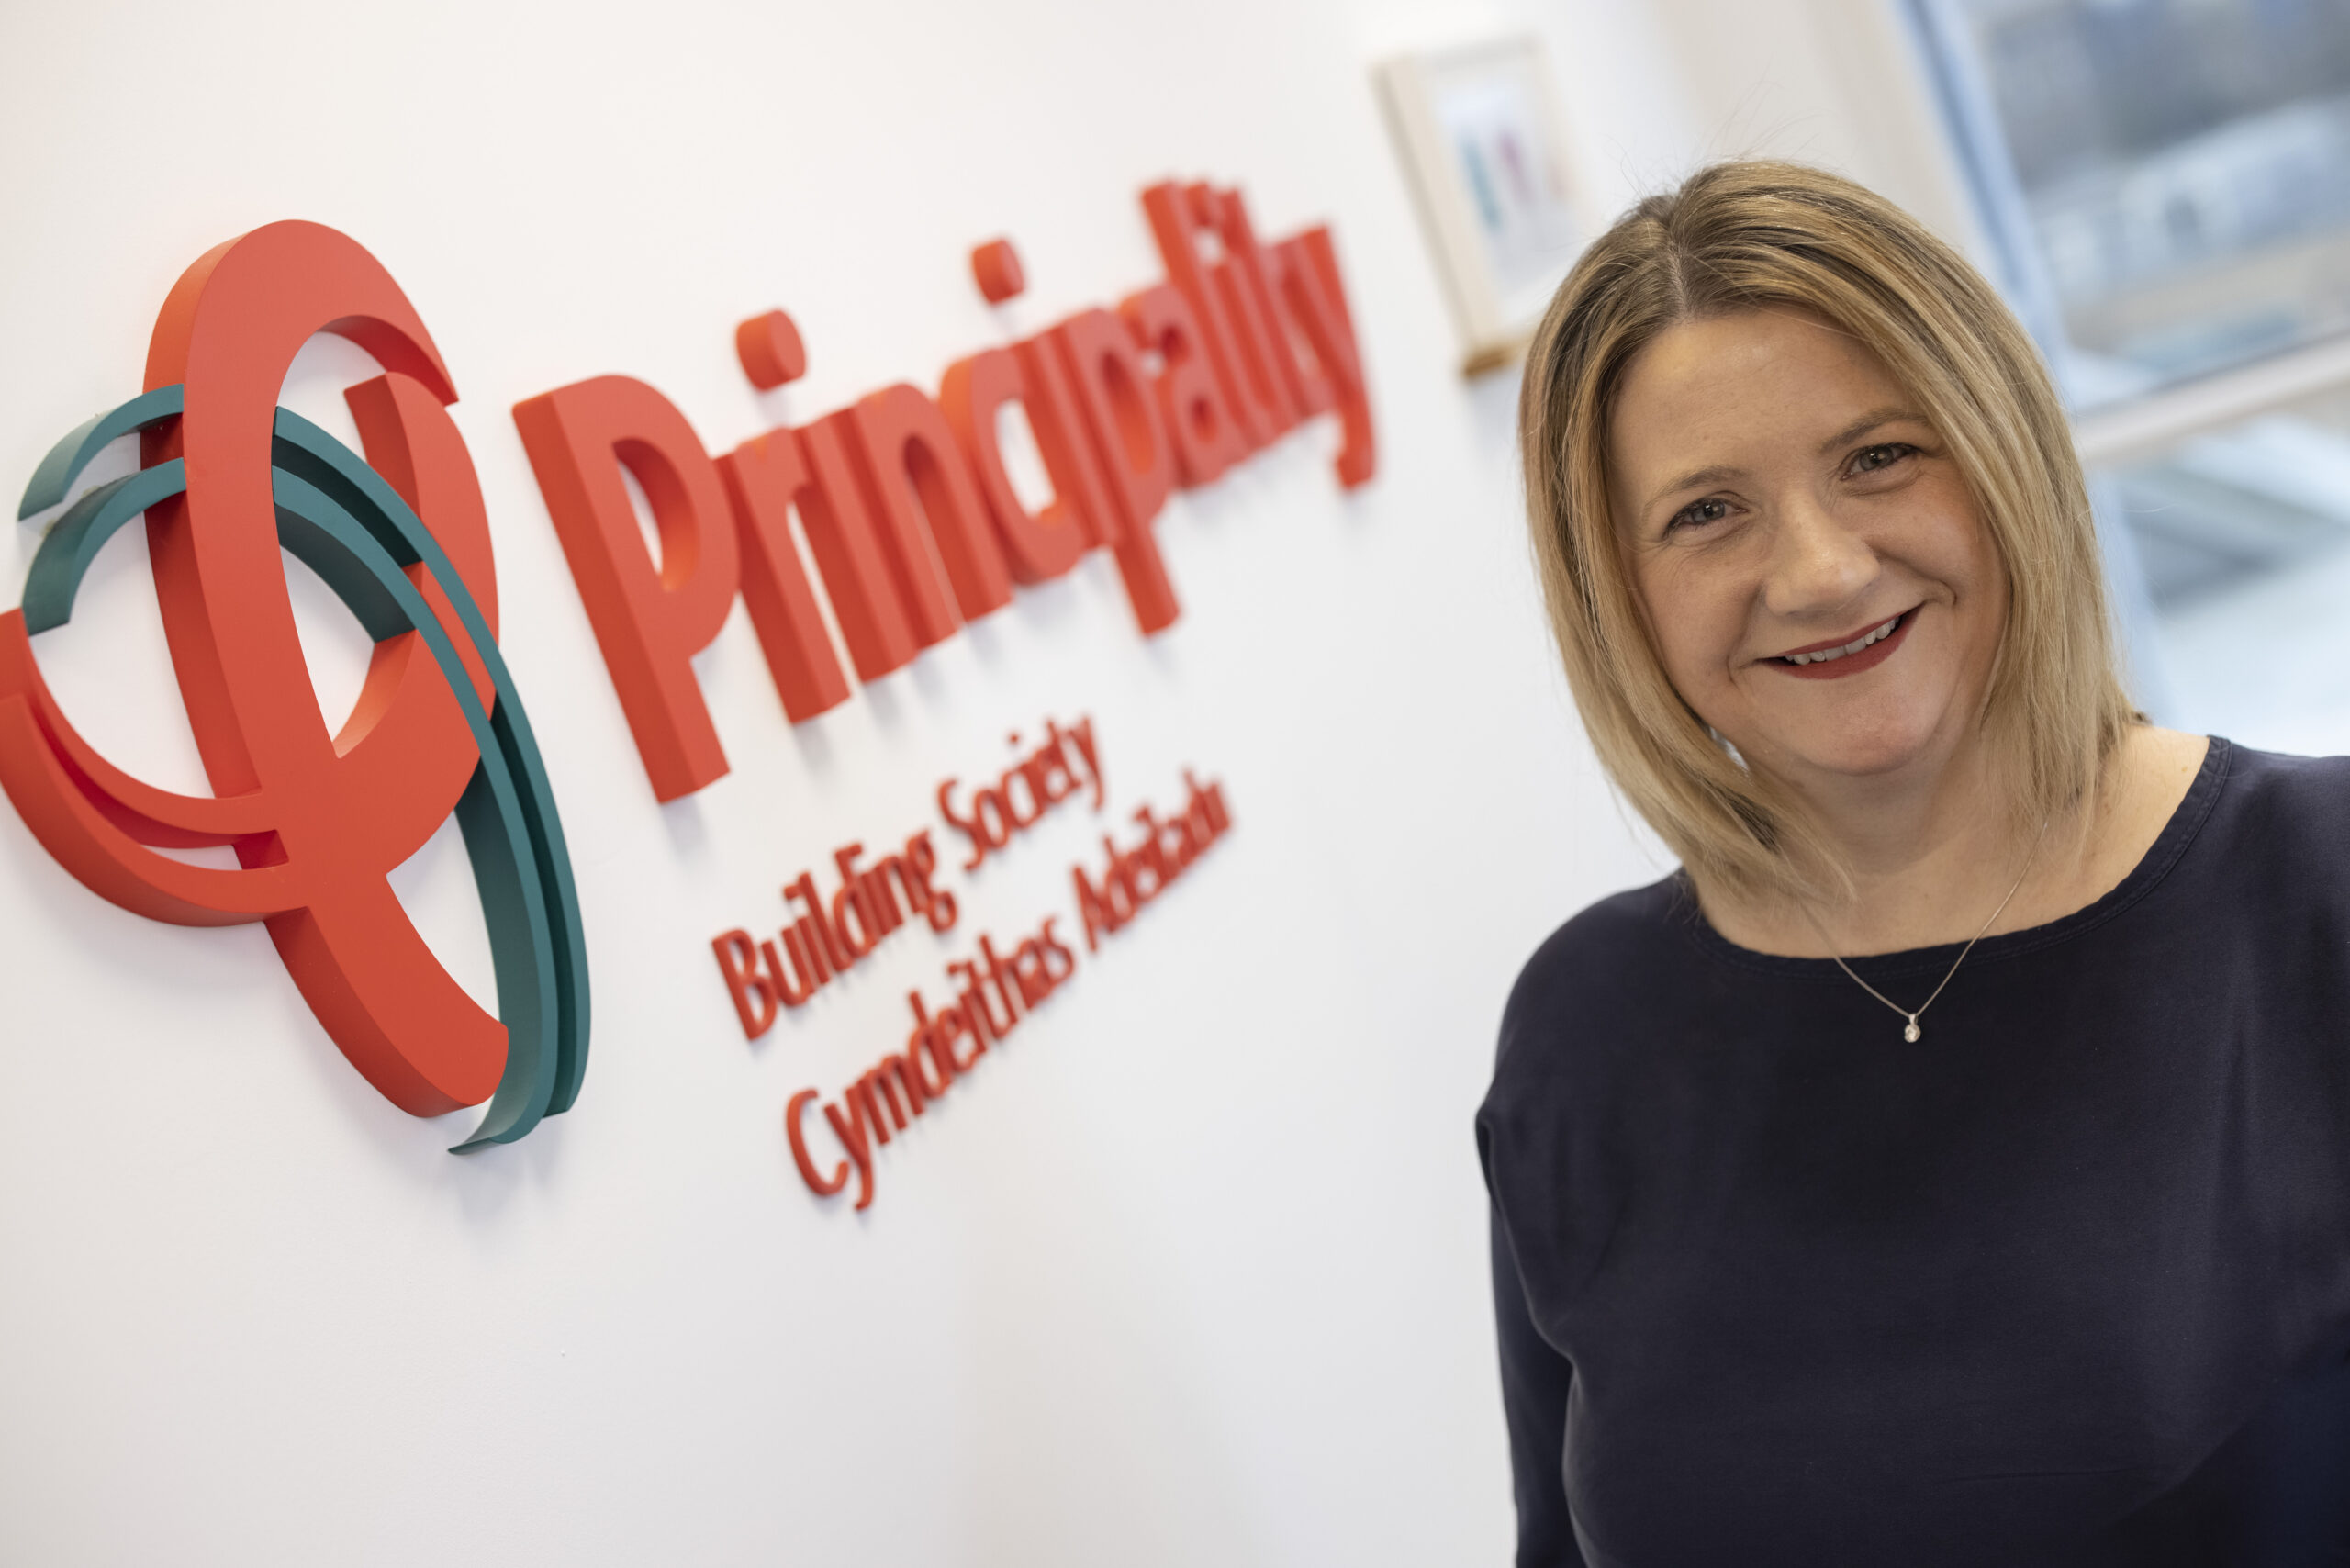 Principality Building Society Annual Results: Principality performs well as it supports customers during pandemic